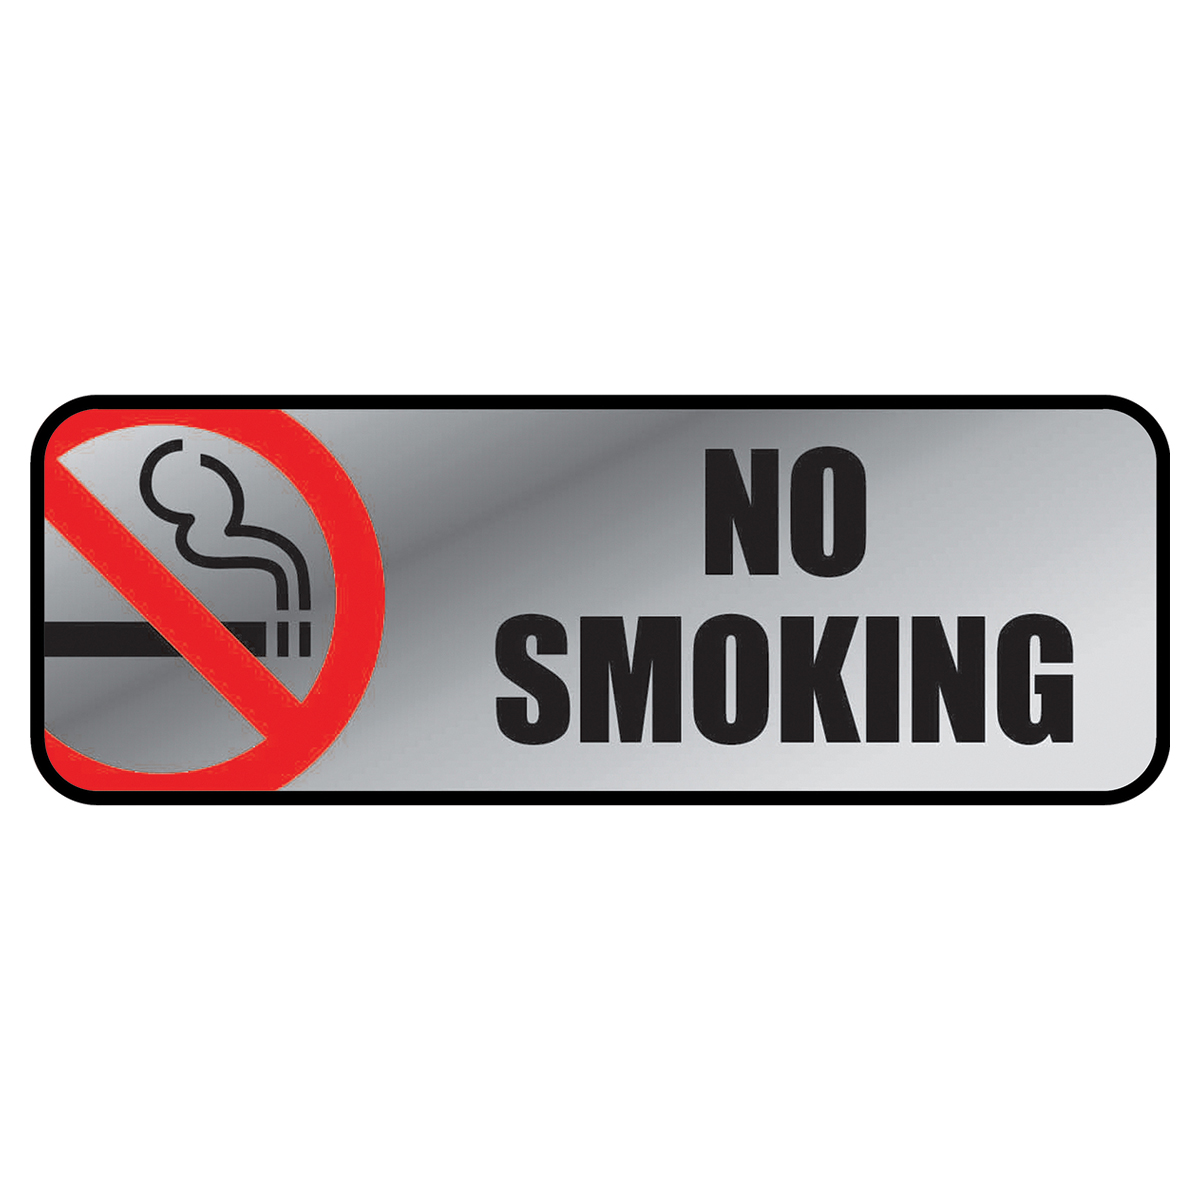 NO SMOKING - Metal Sign - 098207